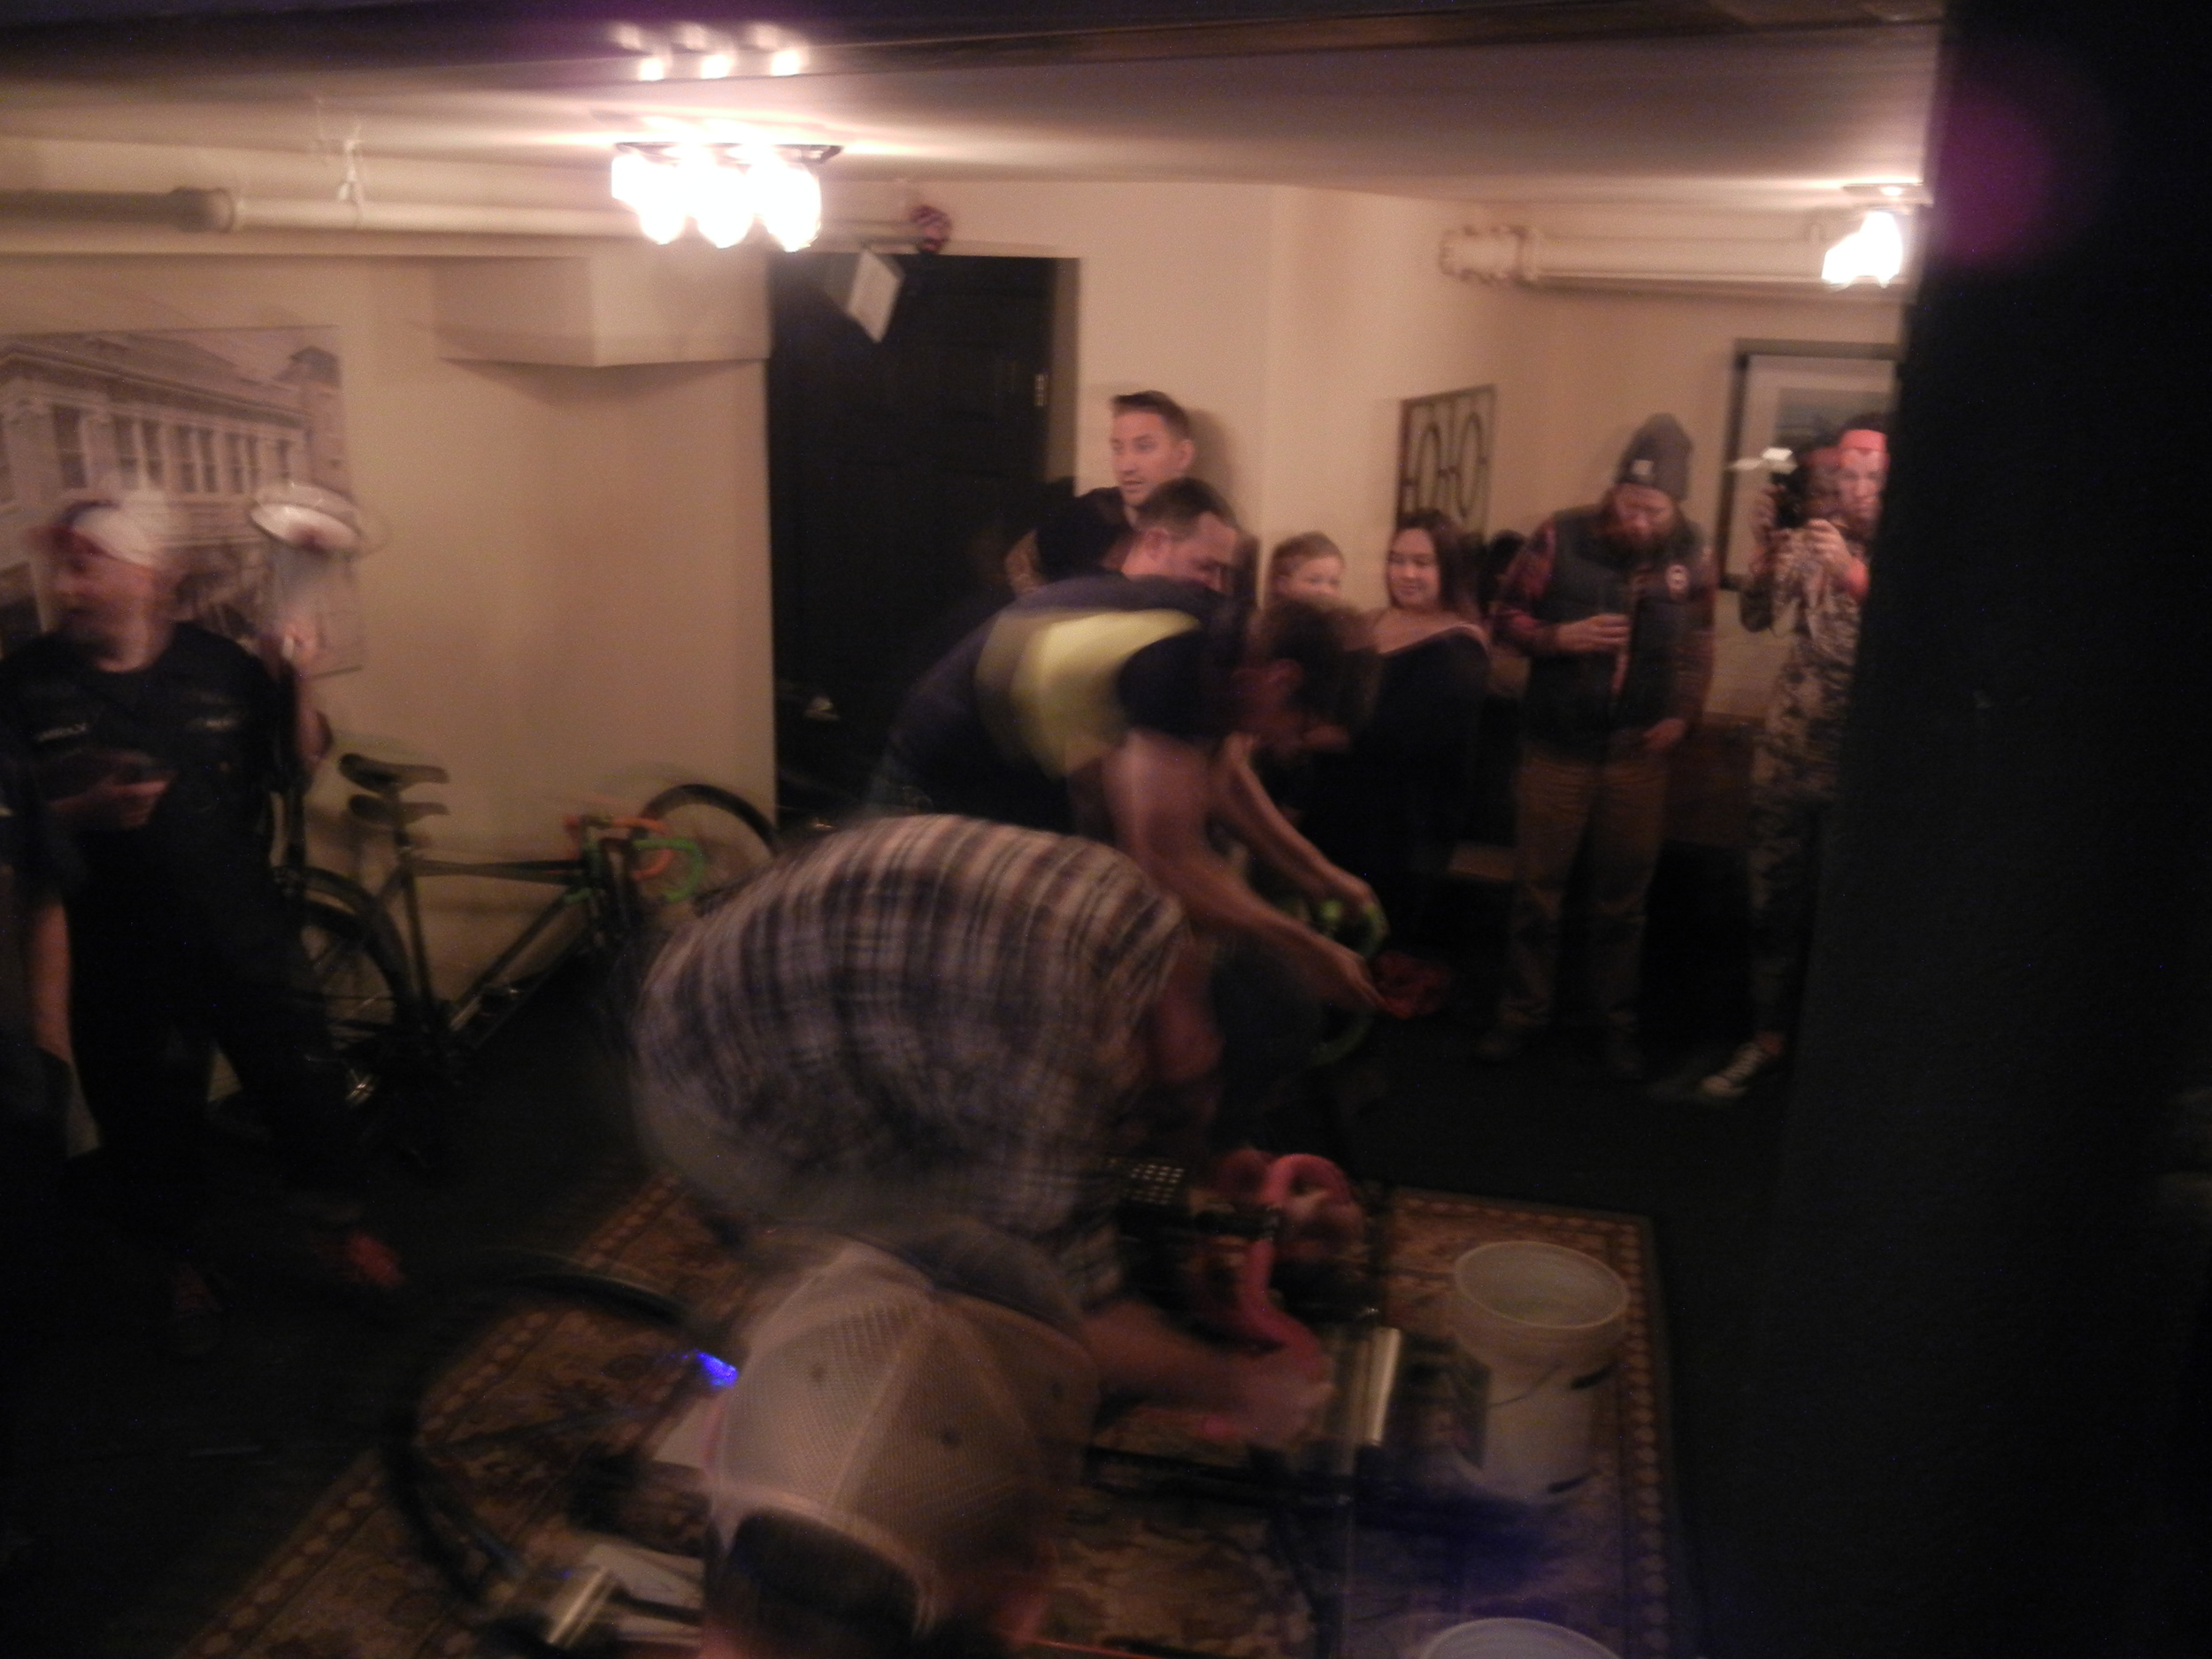 Full gas in flannel, complete with drummer rug and barf bucket.